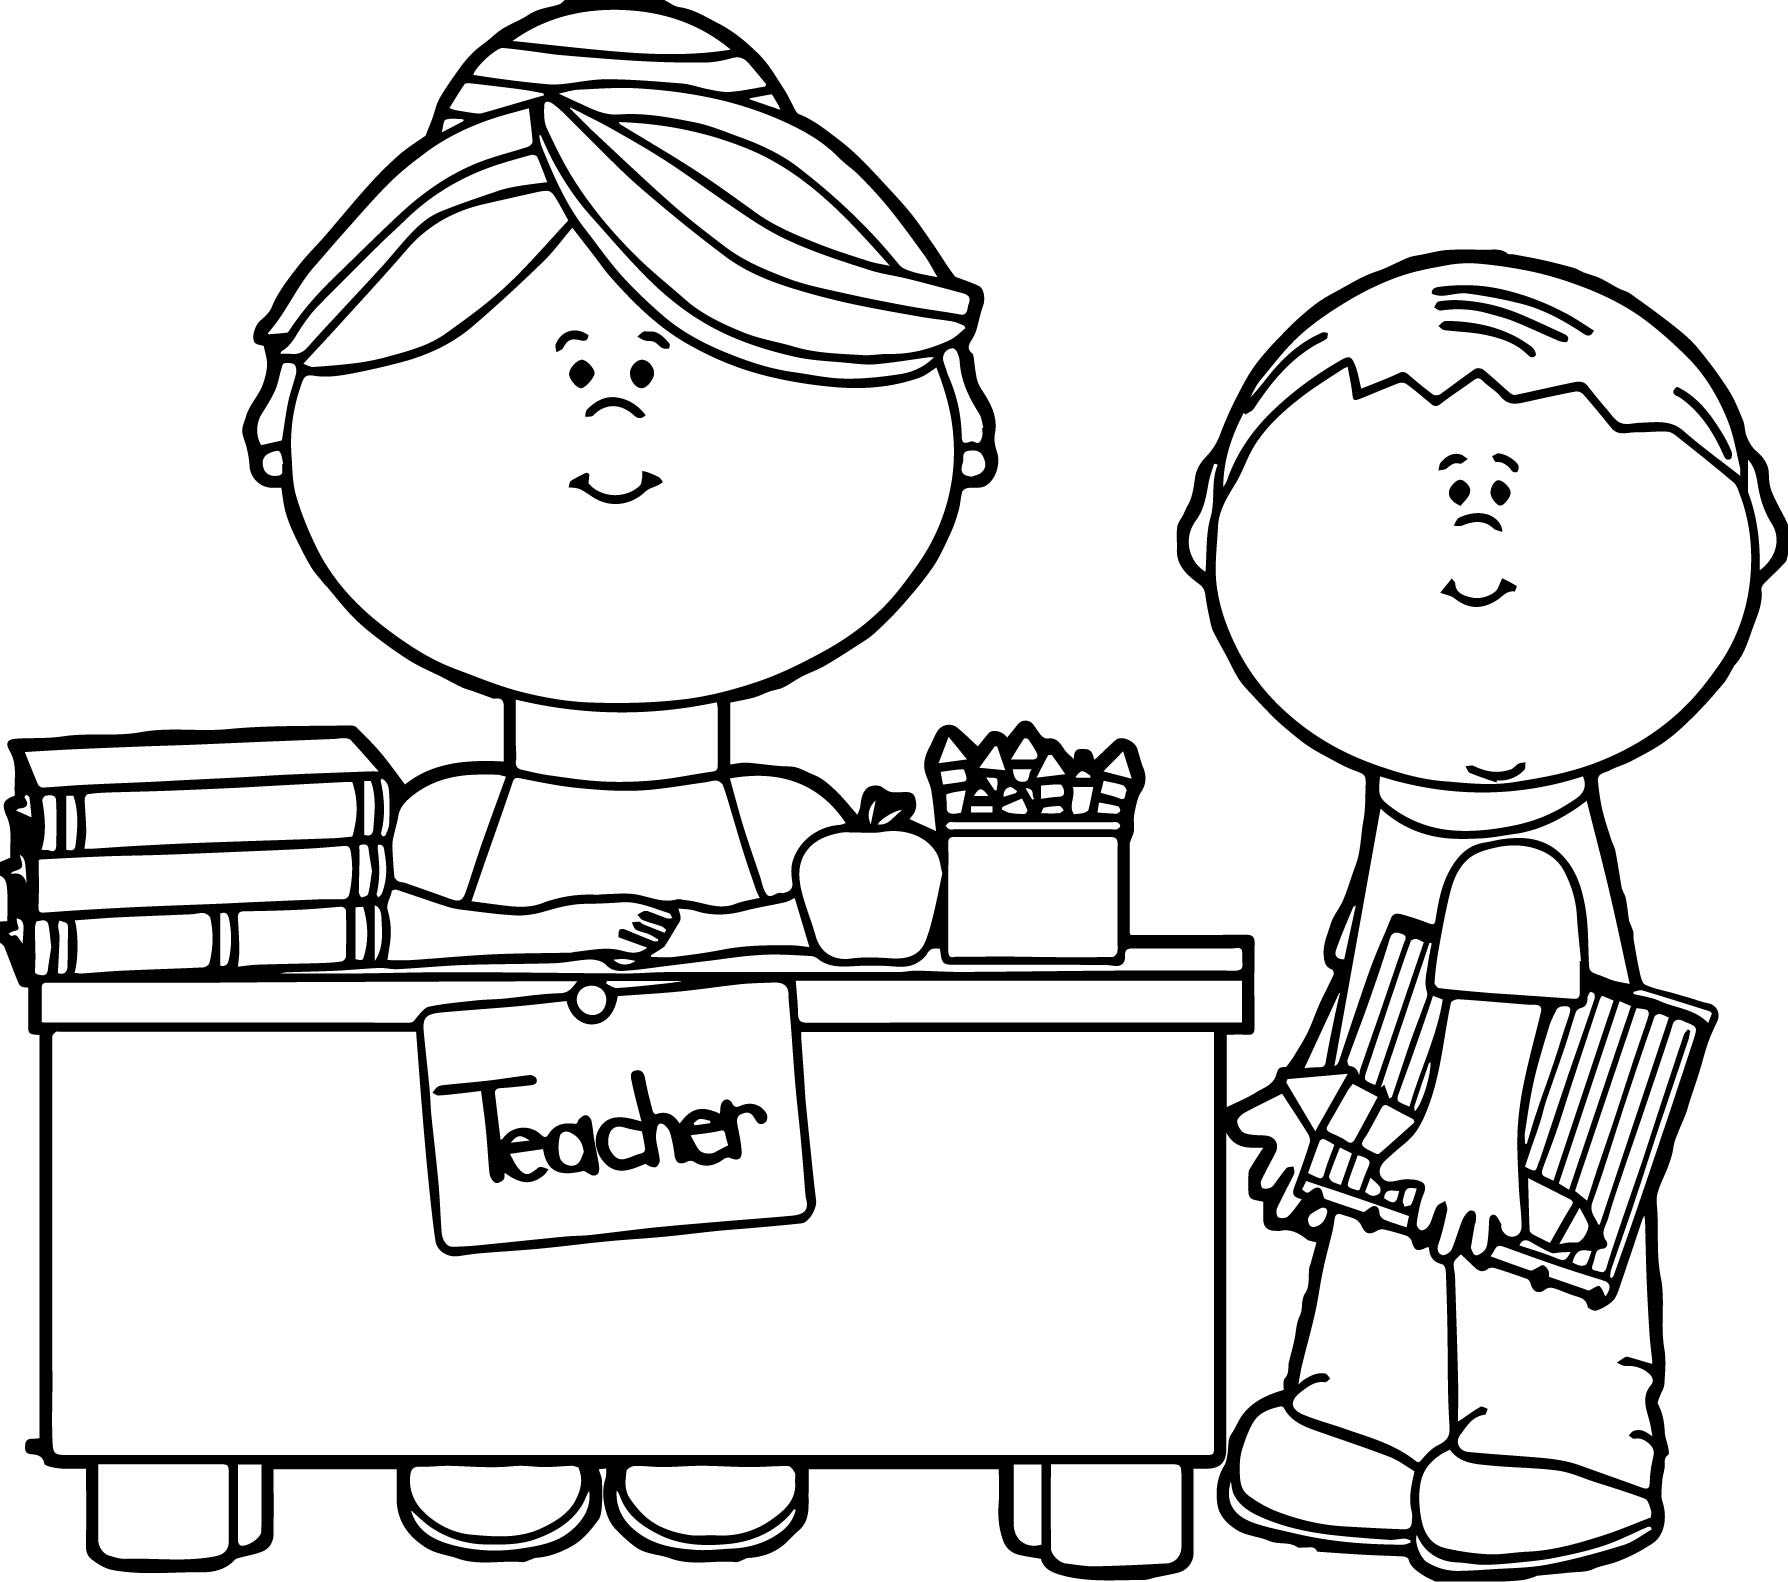 teacher coloring pages teacher and student coloring pages kidsuki pages coloring teacher